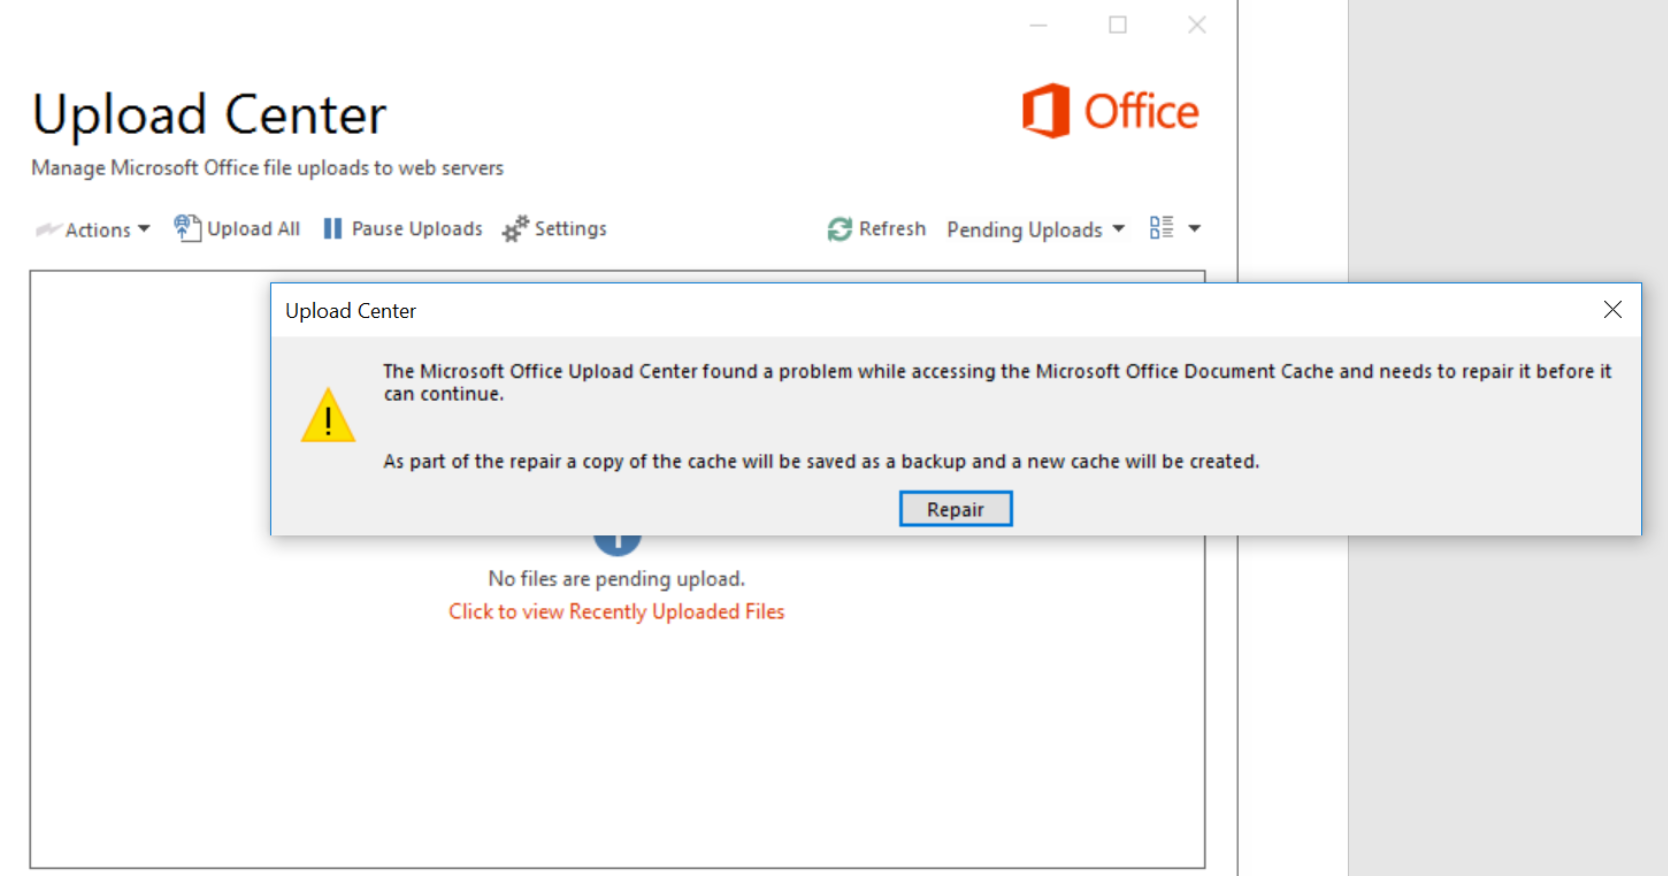 The Microsoft Office Upload Center found a problem while accessing